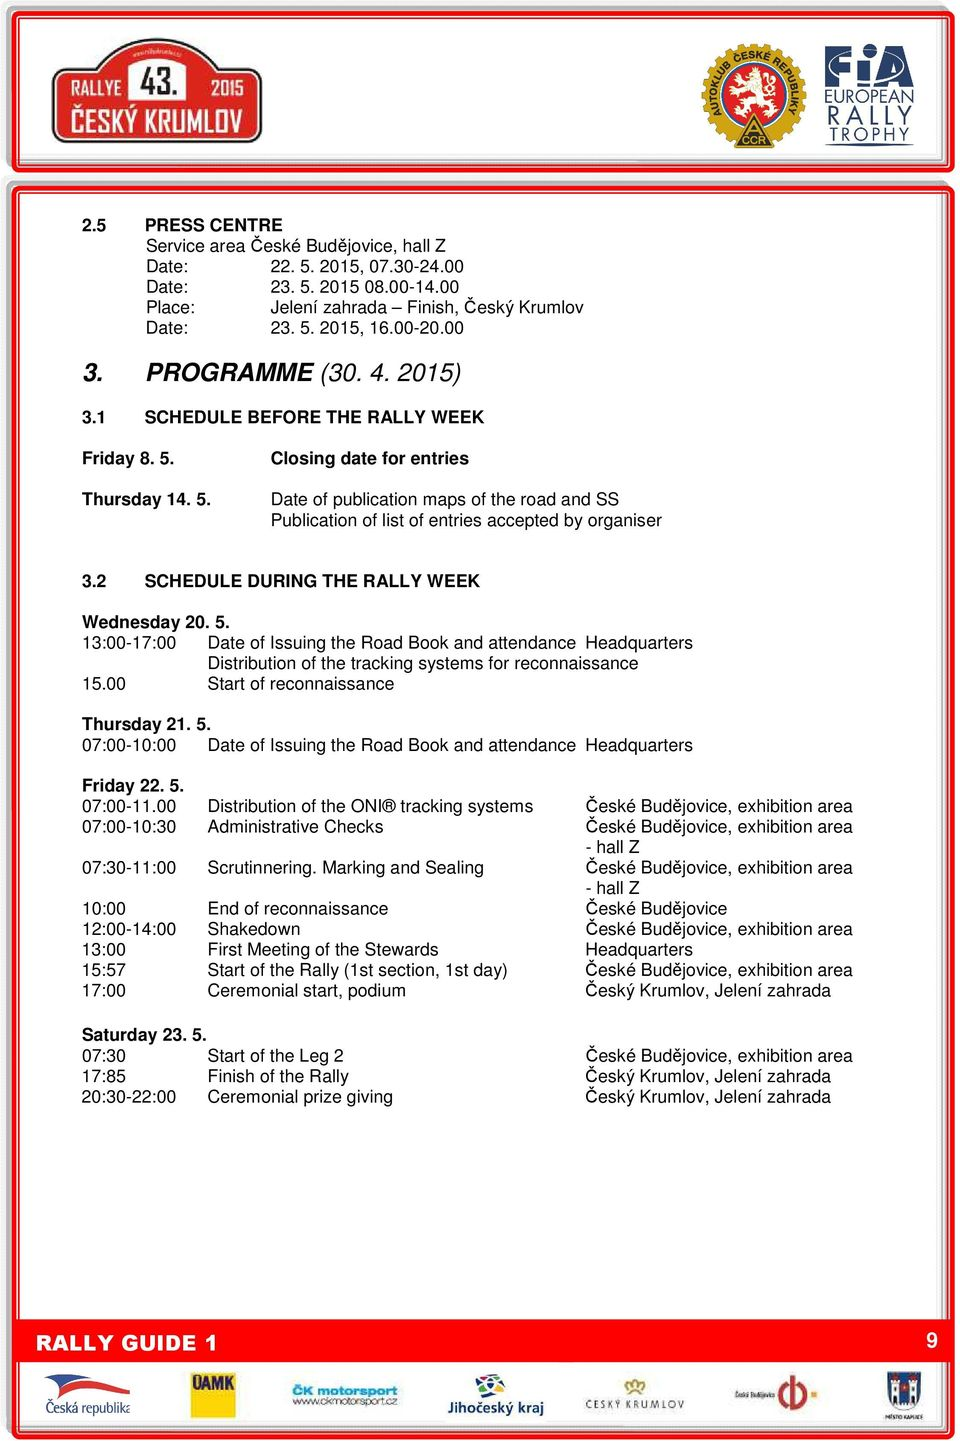 2 SCHEDULE DURING THE RALLY WEEK Wednesday 20. 5. 13:00-17:00 Date of Issuing the Road Book and attendance Headquarters Distribution of the tracking systems for reconnaissance 15.